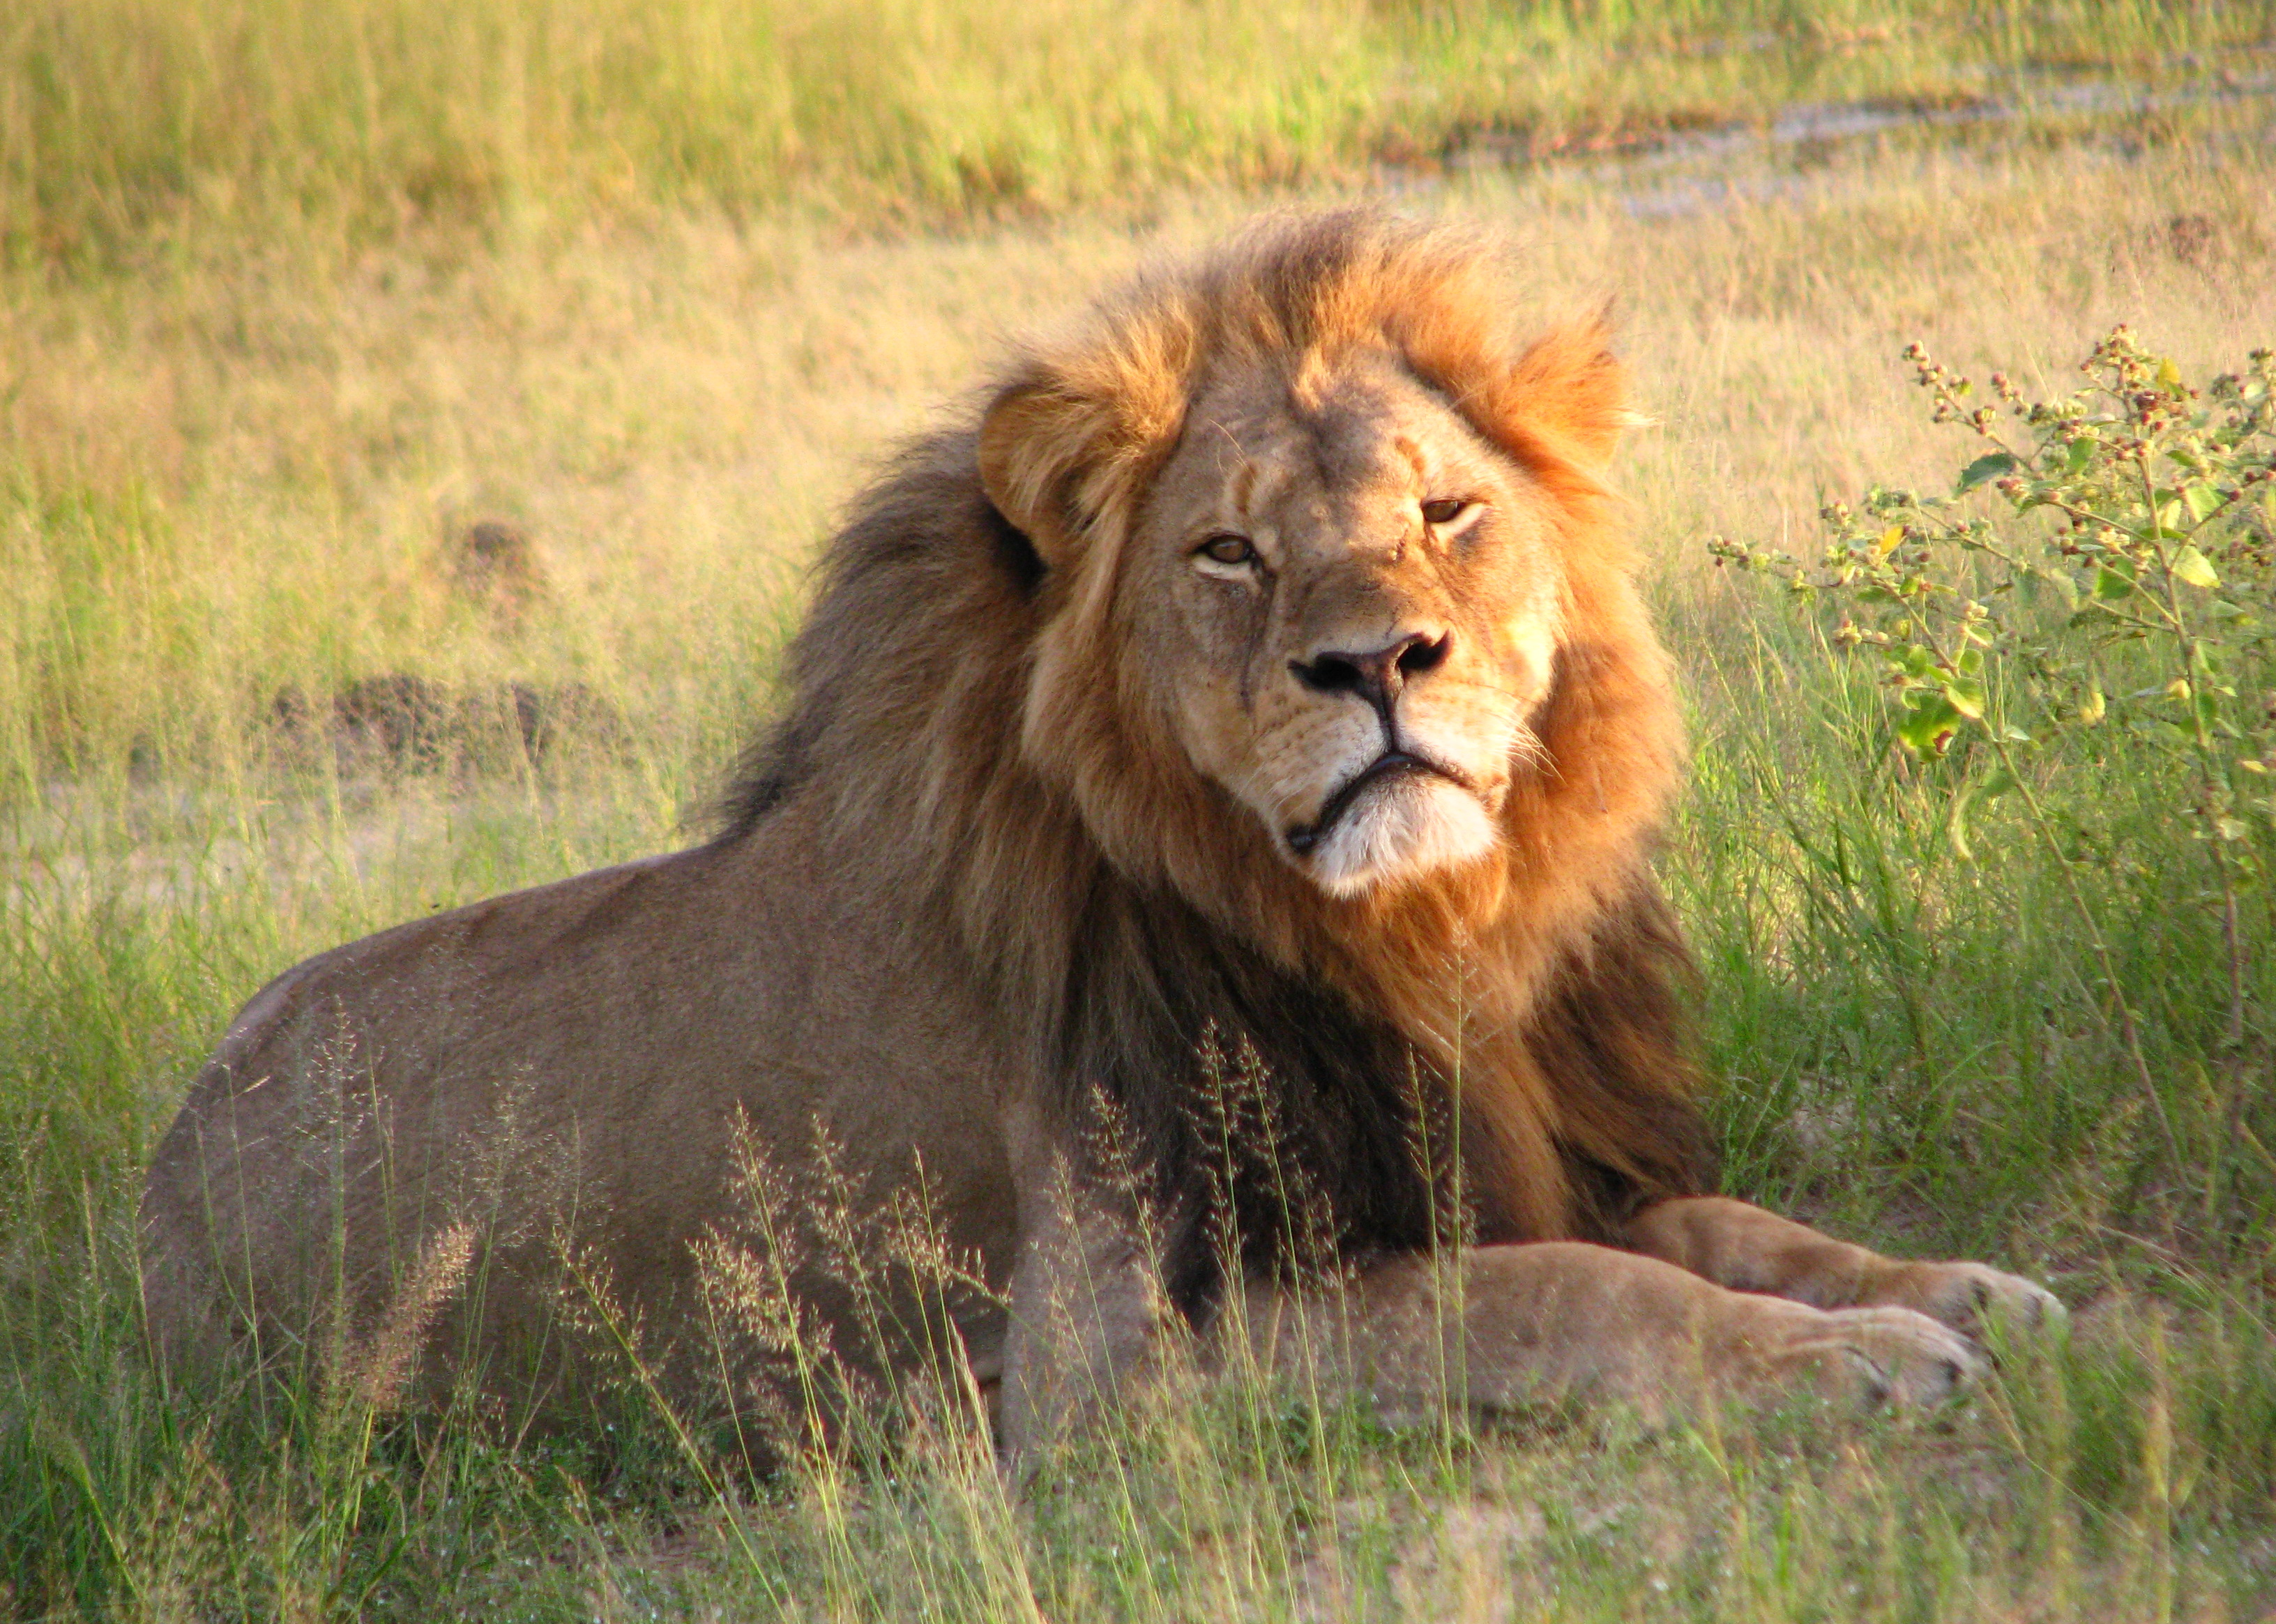 https://upload.wikimedia.org/wikipedia/commons/1/1e/Cecil_the_lion_at_Hwange_National_Park_(4516560206).jpg